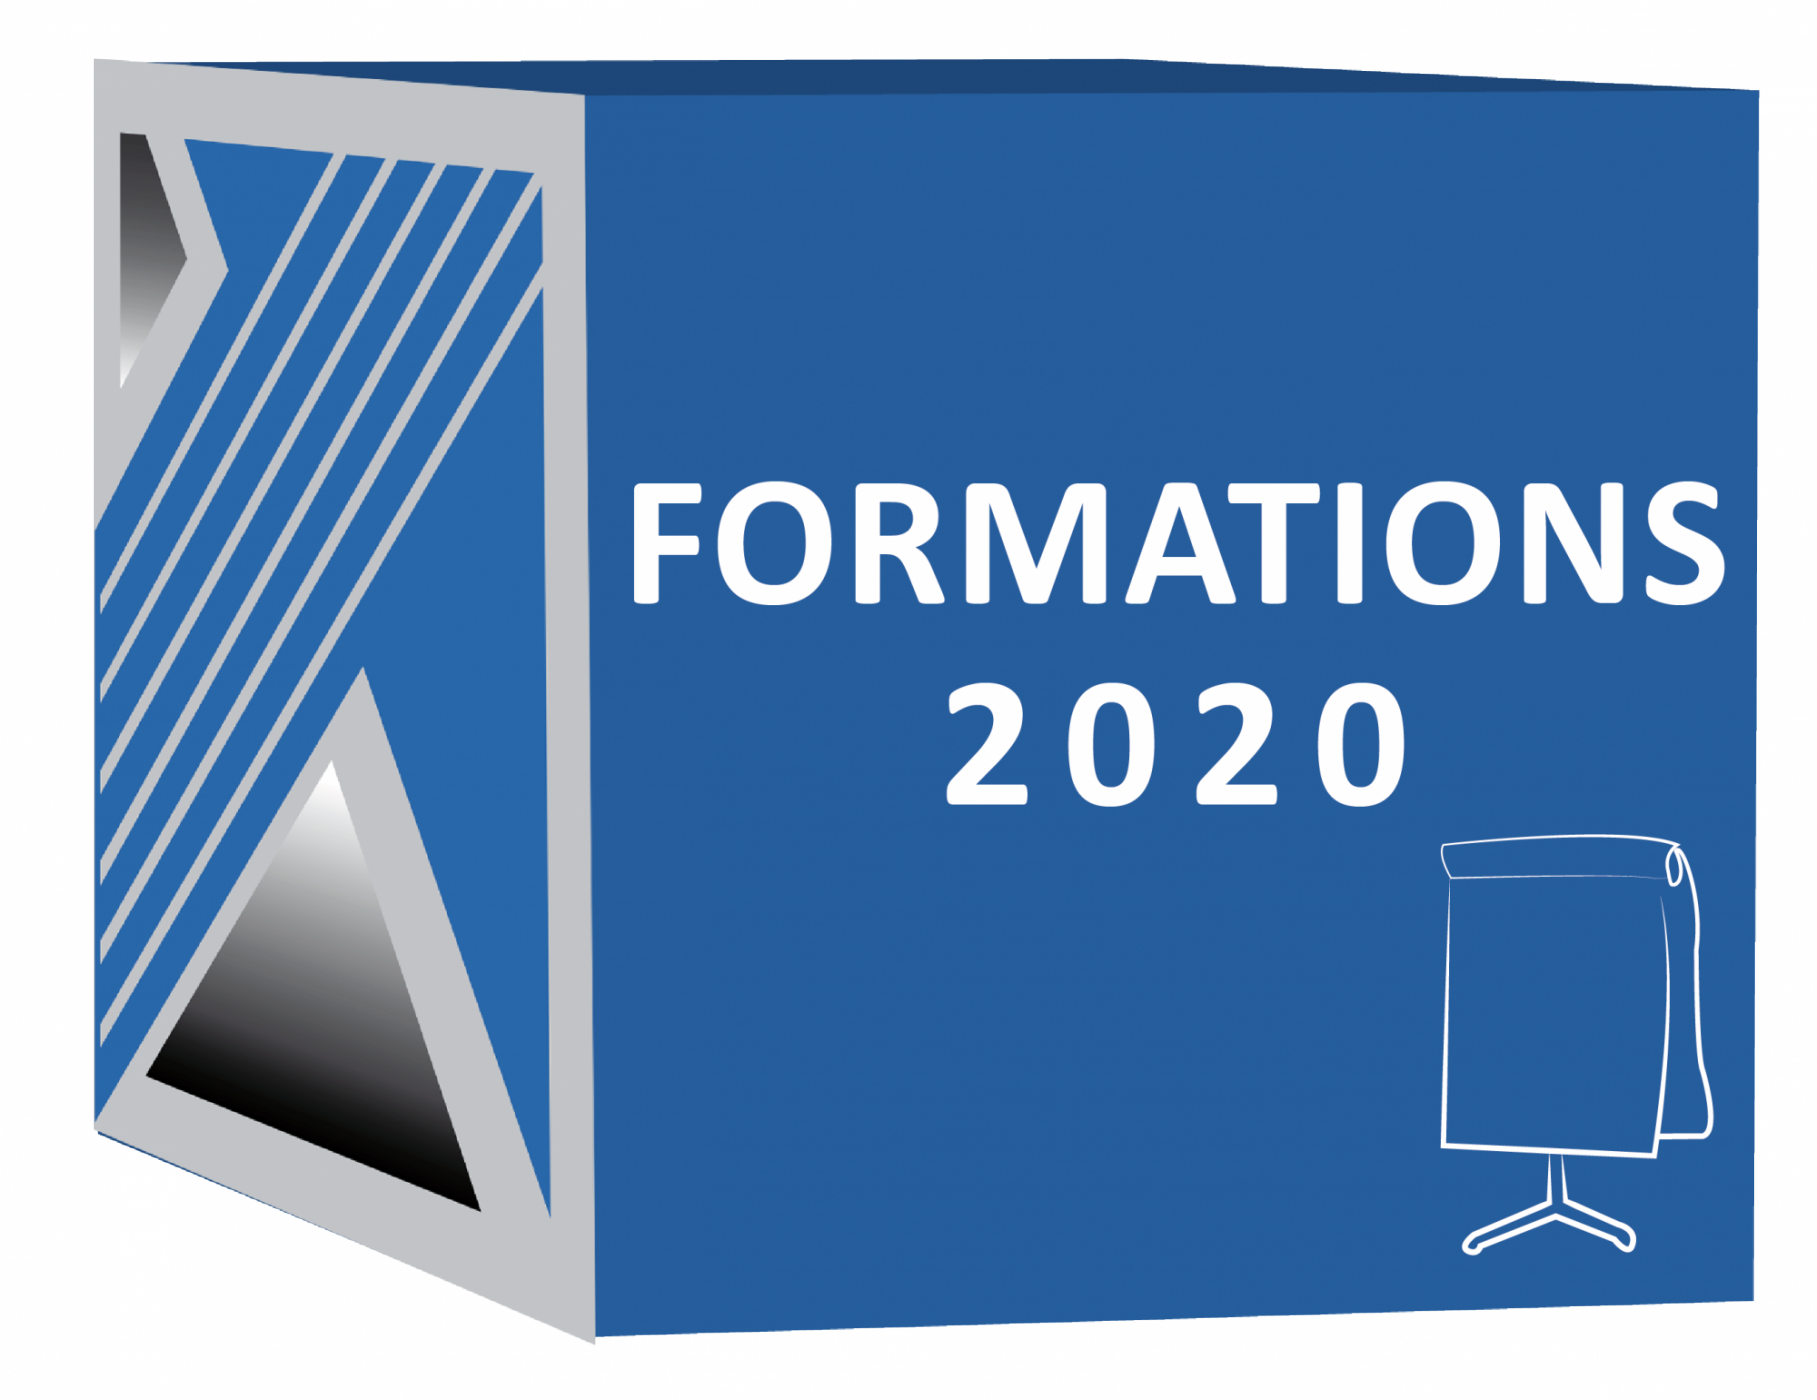 Formations-2020-ISIT